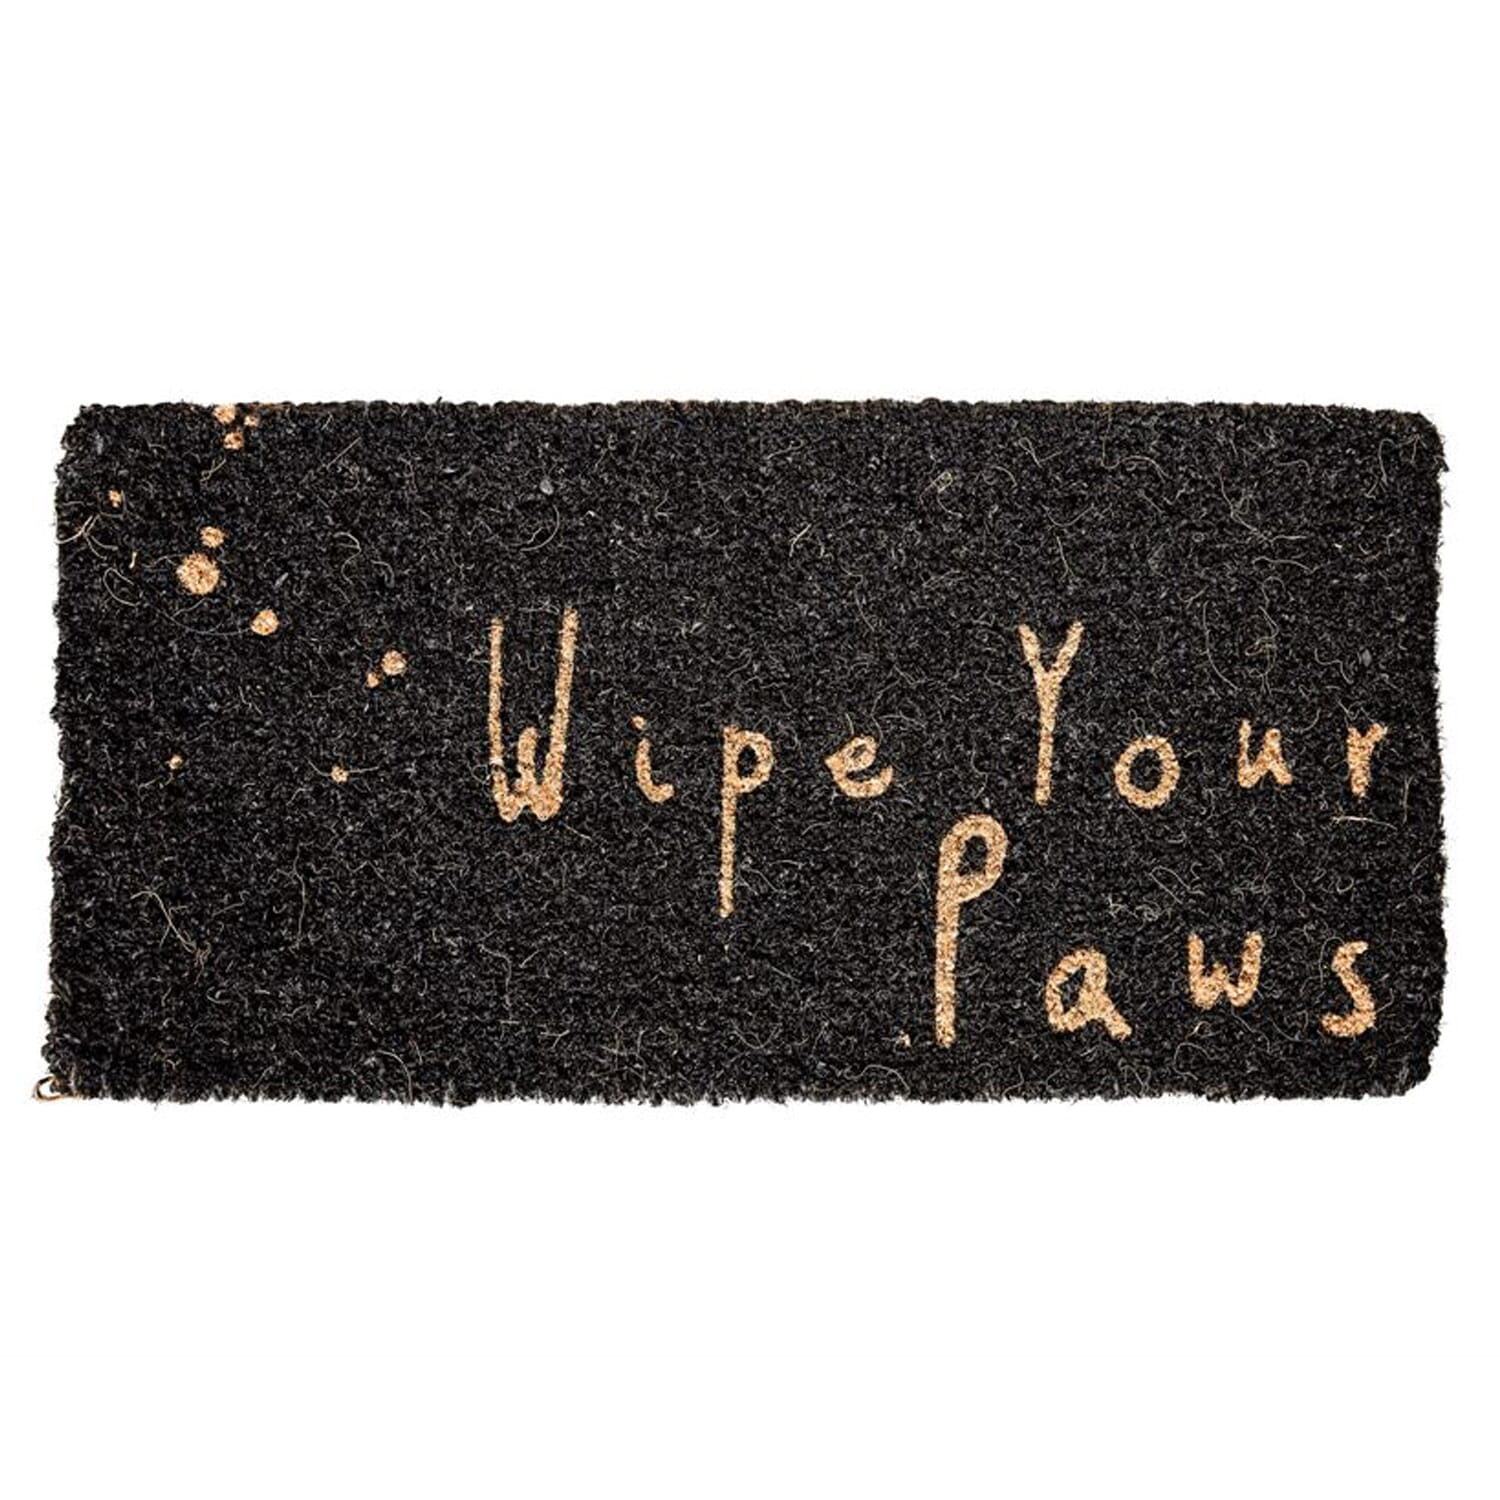 Wipe Your Paws Doormat Rugs Wg Amp R Furniture